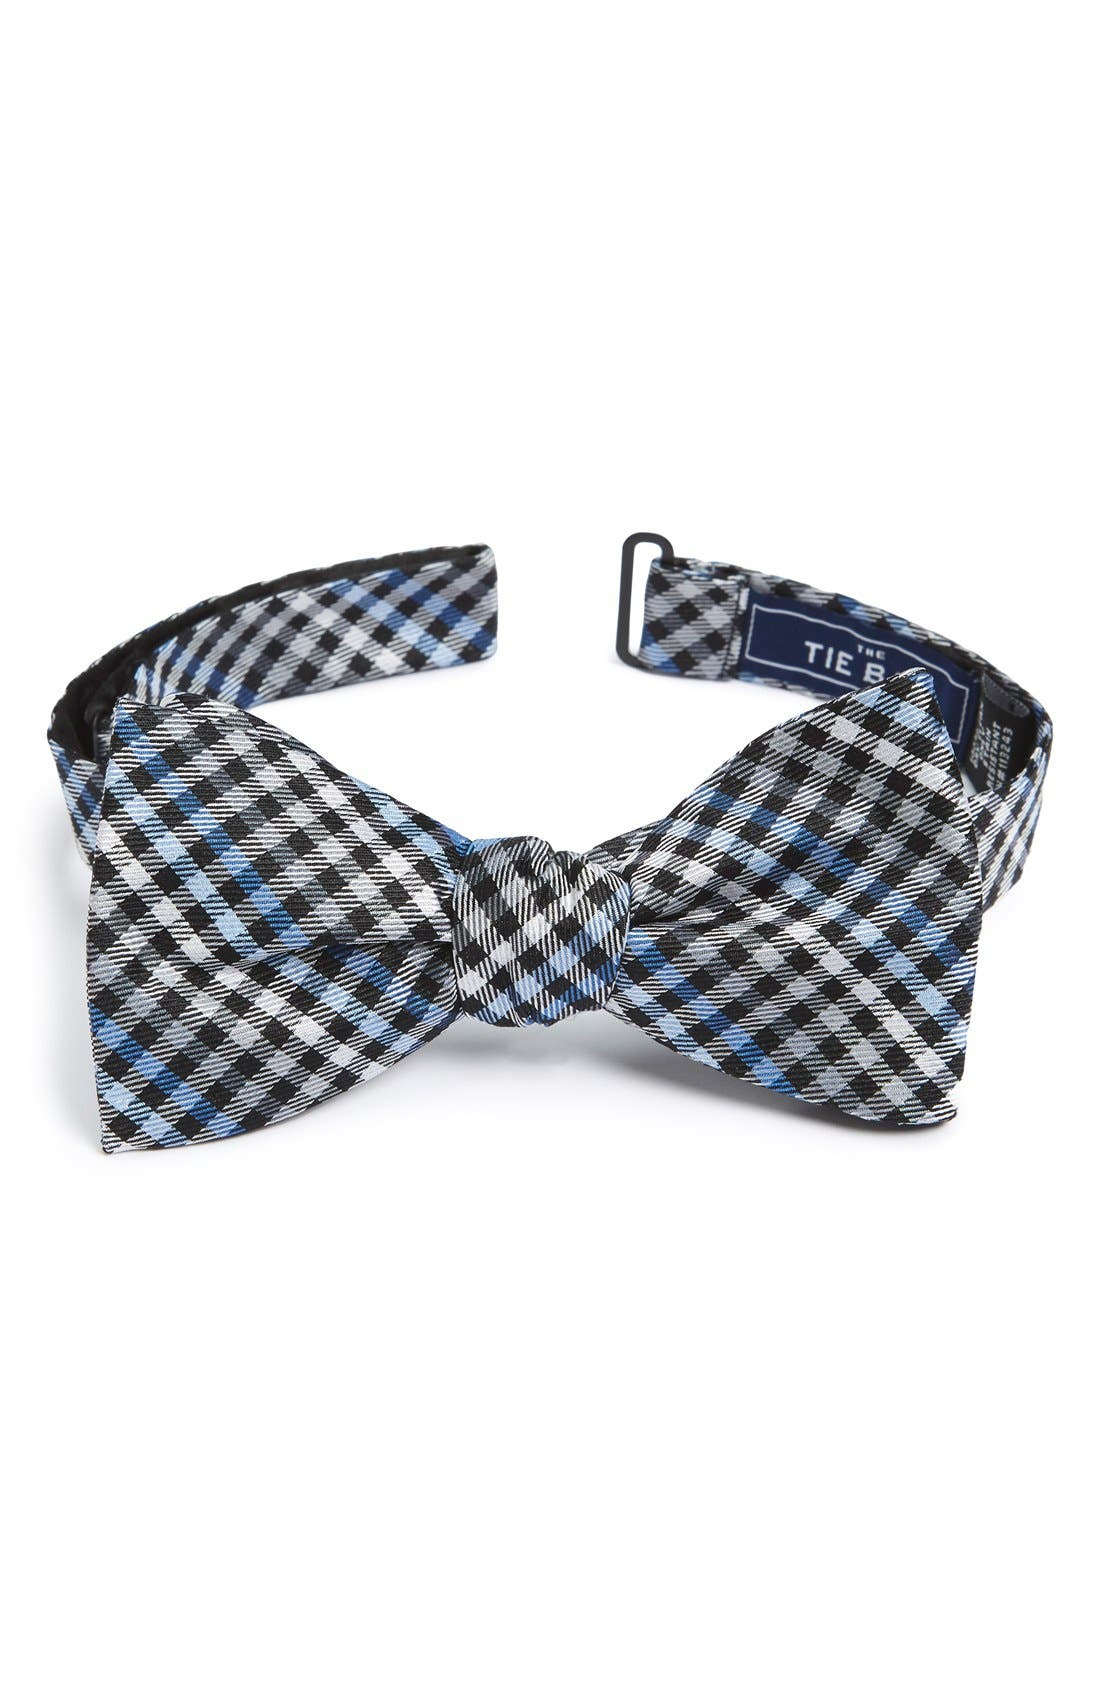 THE TIE BAR Plaid Bow Tie